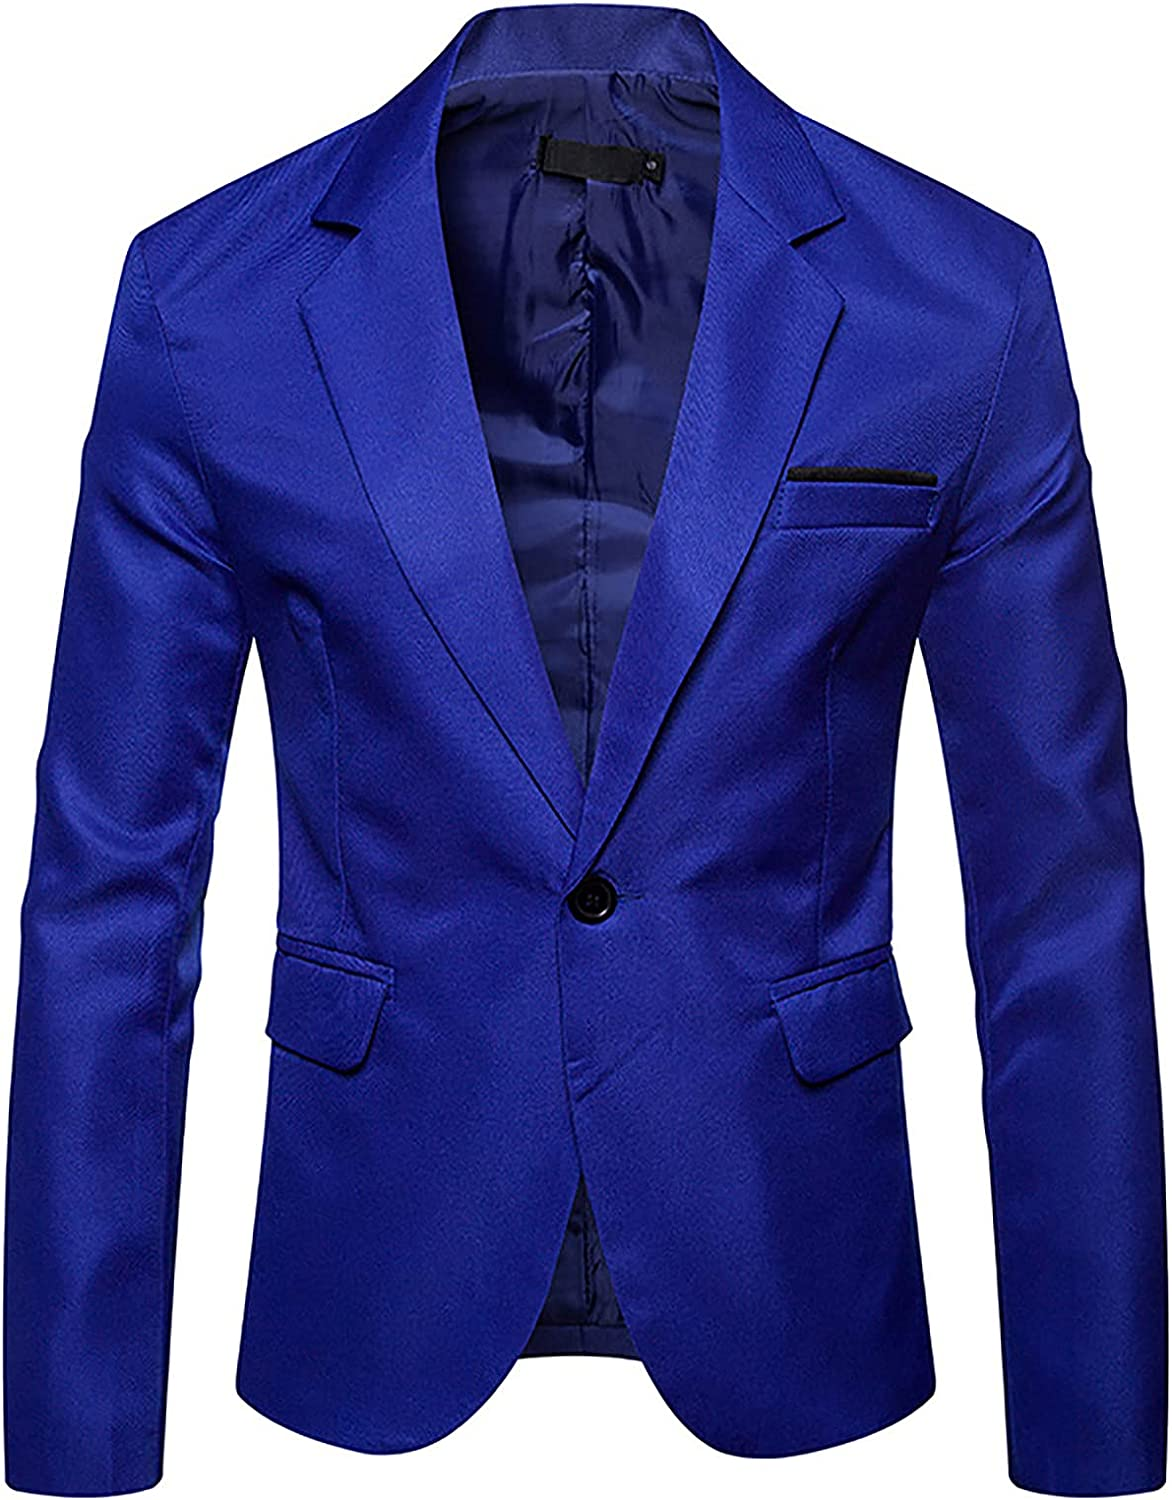 Men's Suit Jacket Casual Solid Tuxedo Jackets One Button Stylish Dinner Jacket Wedding Party Dress Suit Blazers